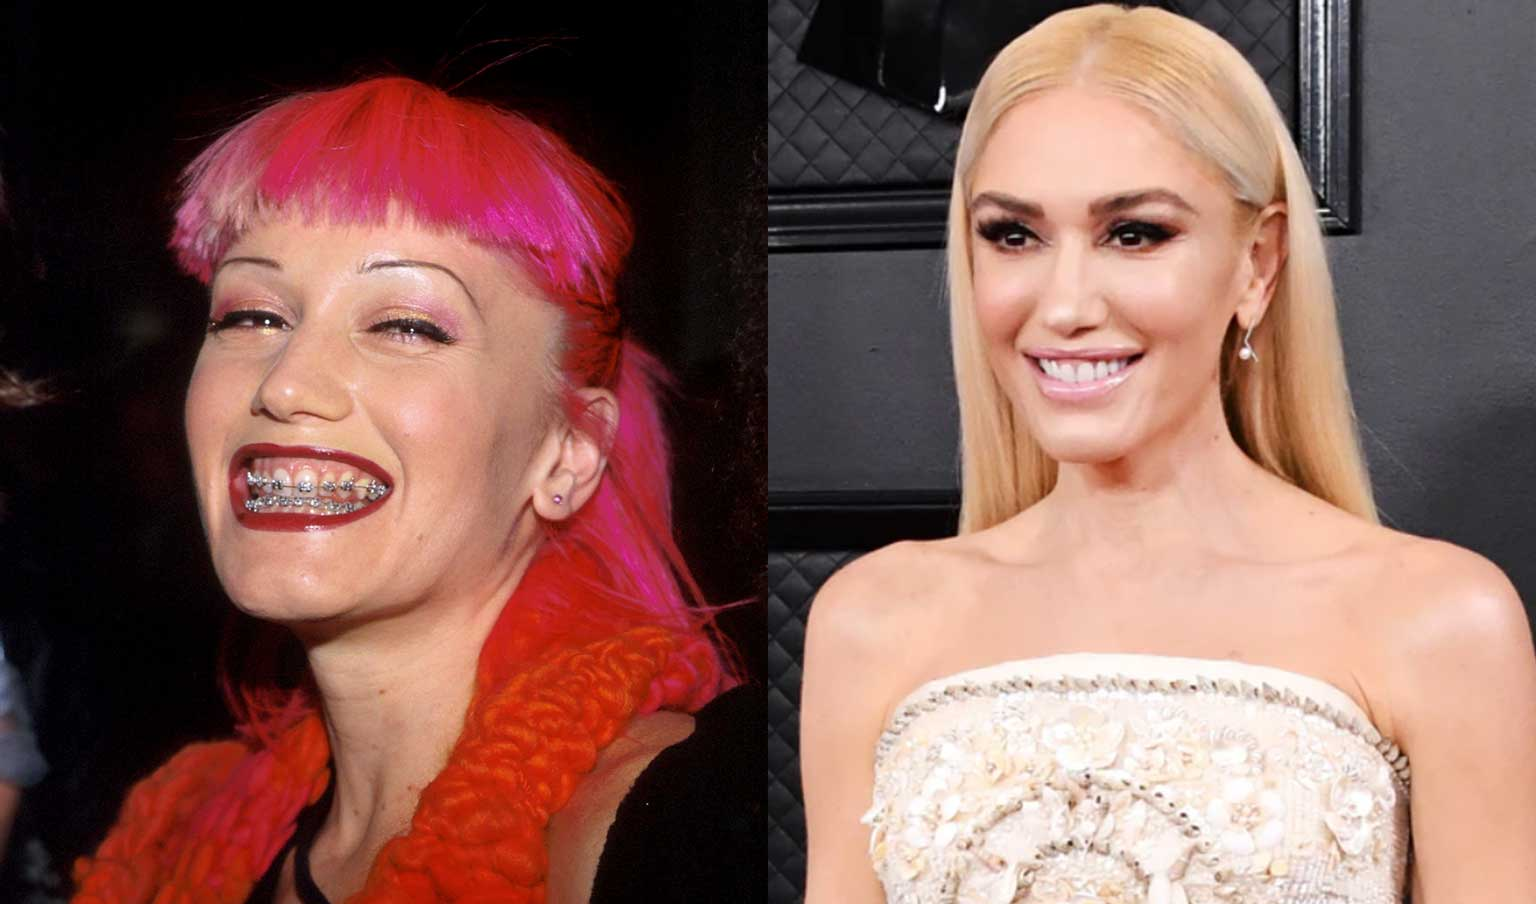 Gwen Stefani with braces and after braces